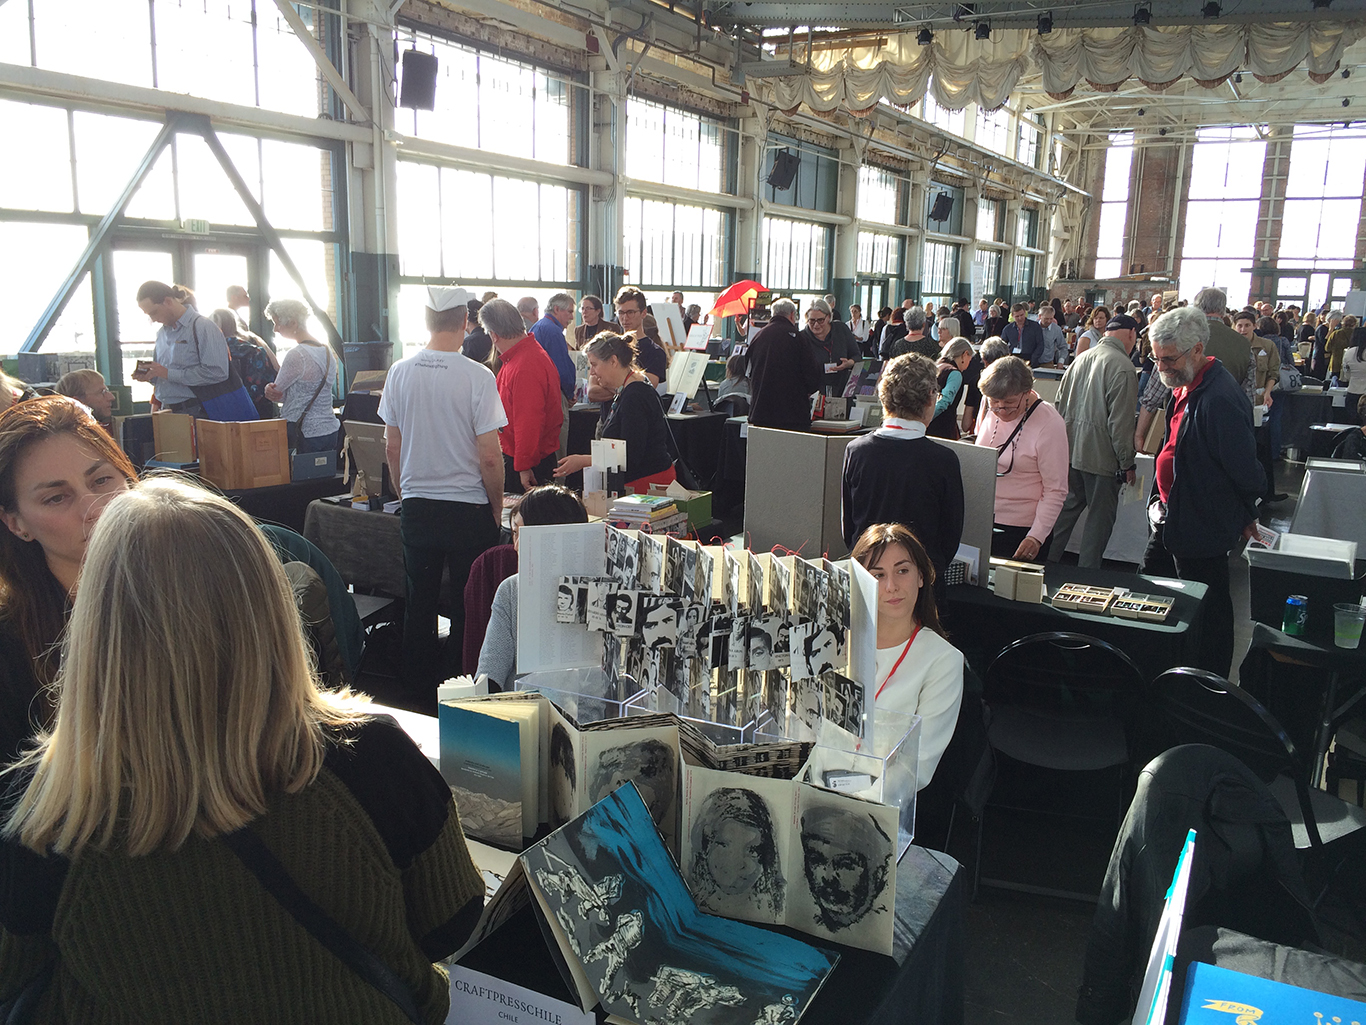 A view from the CODEX book fair (photo by Jessica Holada).